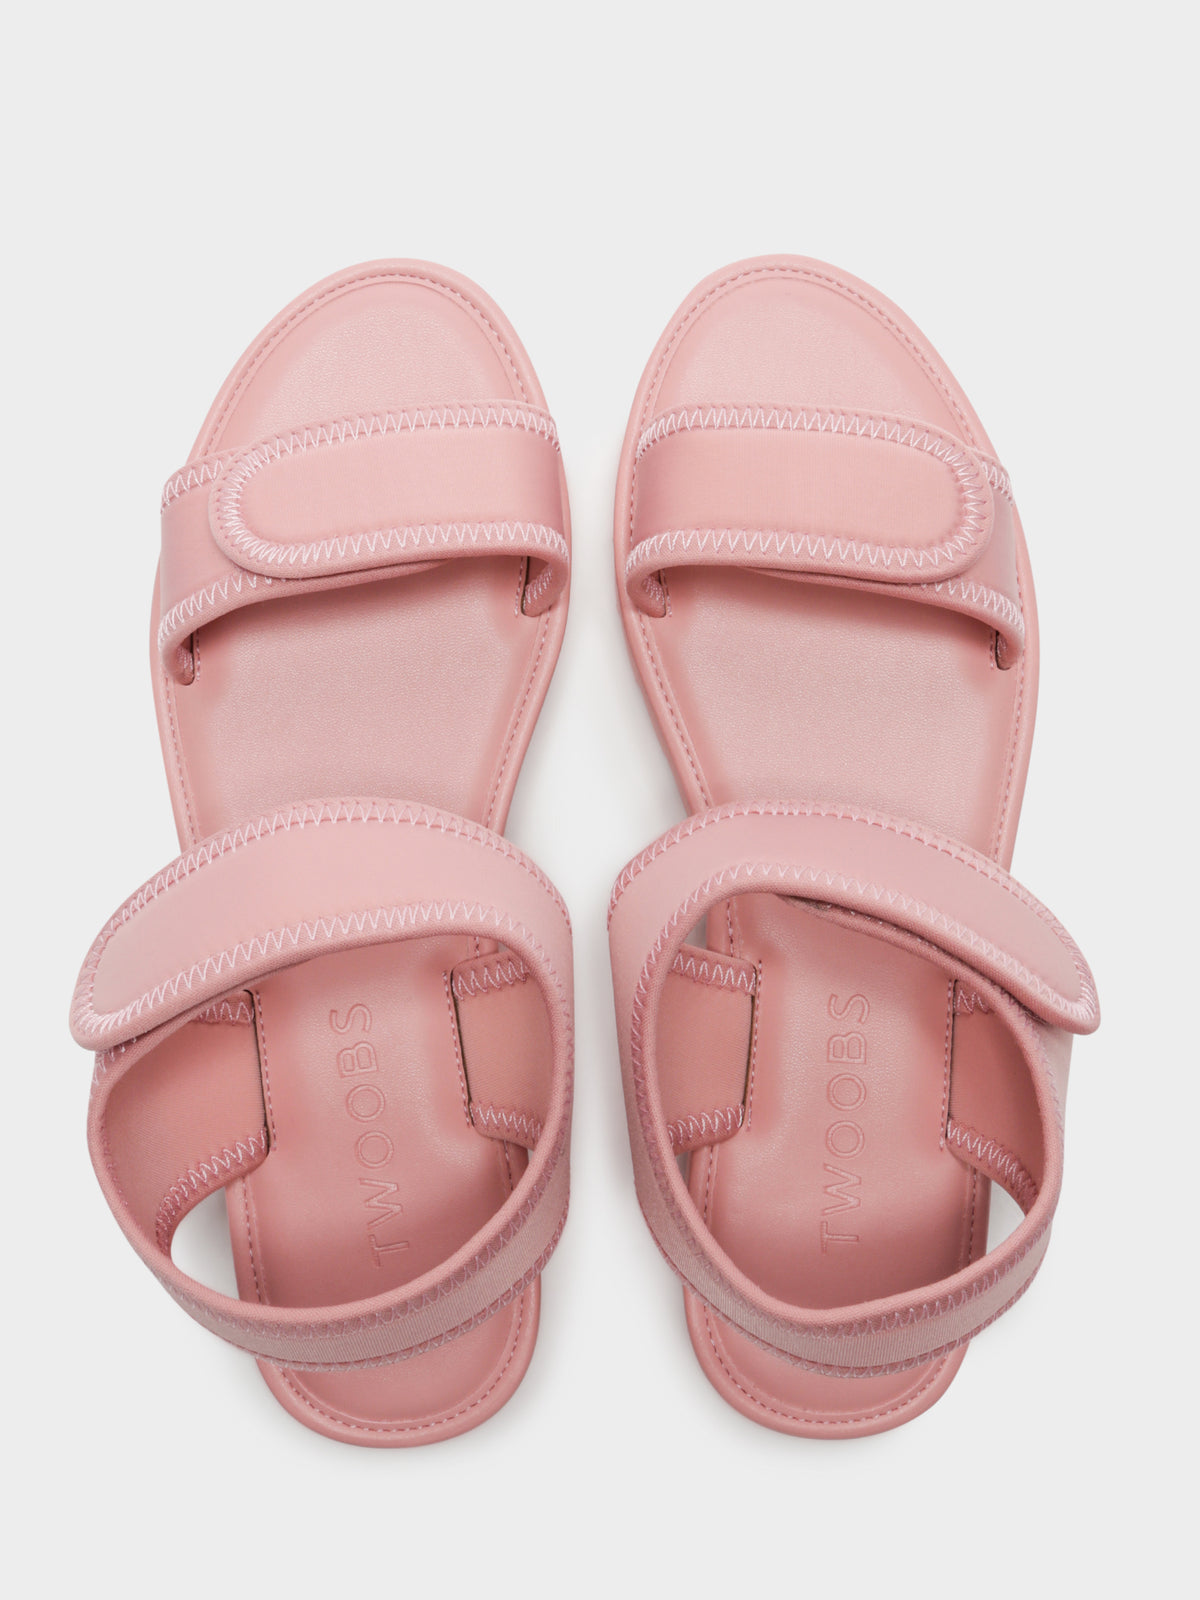 Womens Olivia Savannah Neoprene Sandals in Light Pink